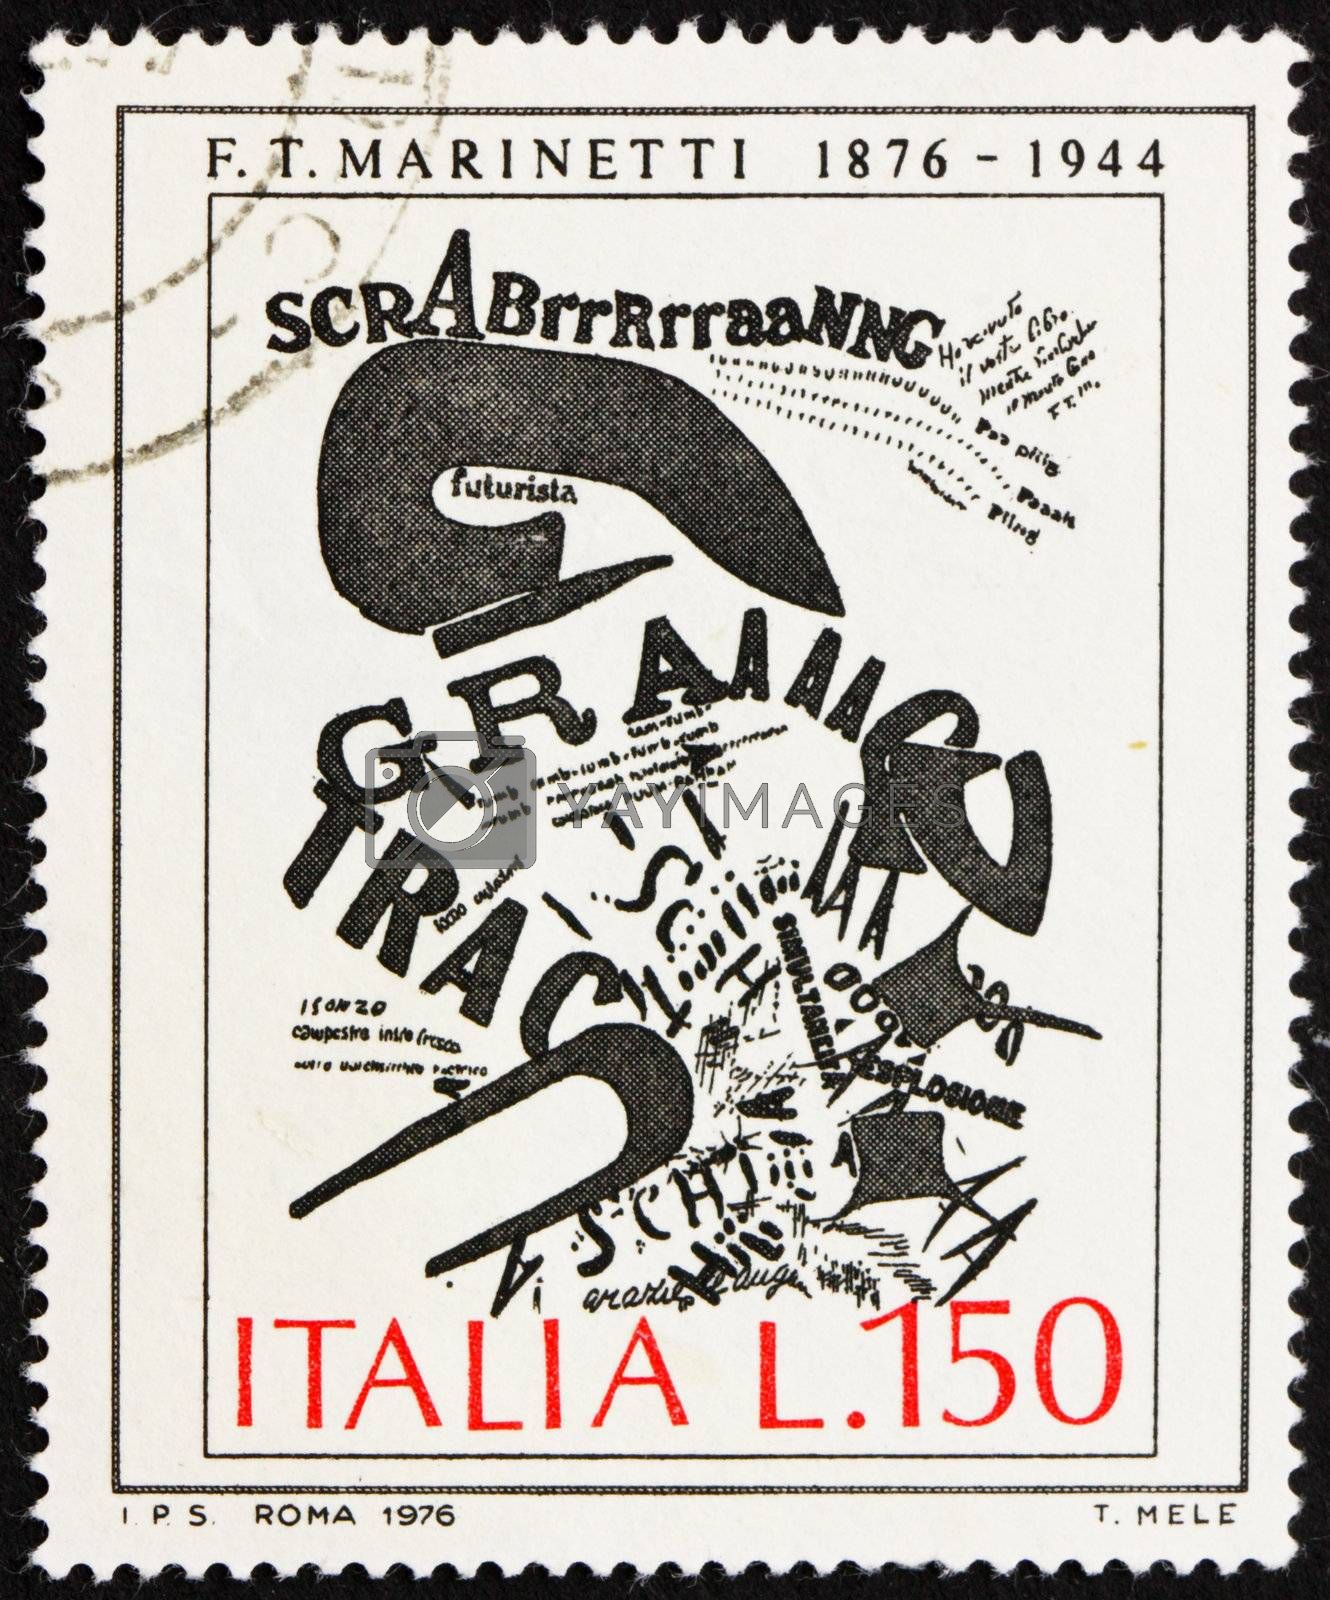 ITALY - CIRCA 1976: a stamp printed in the Italy shows The Gunner�s Letter, Painting by F. T. Marinetti, circa 1976